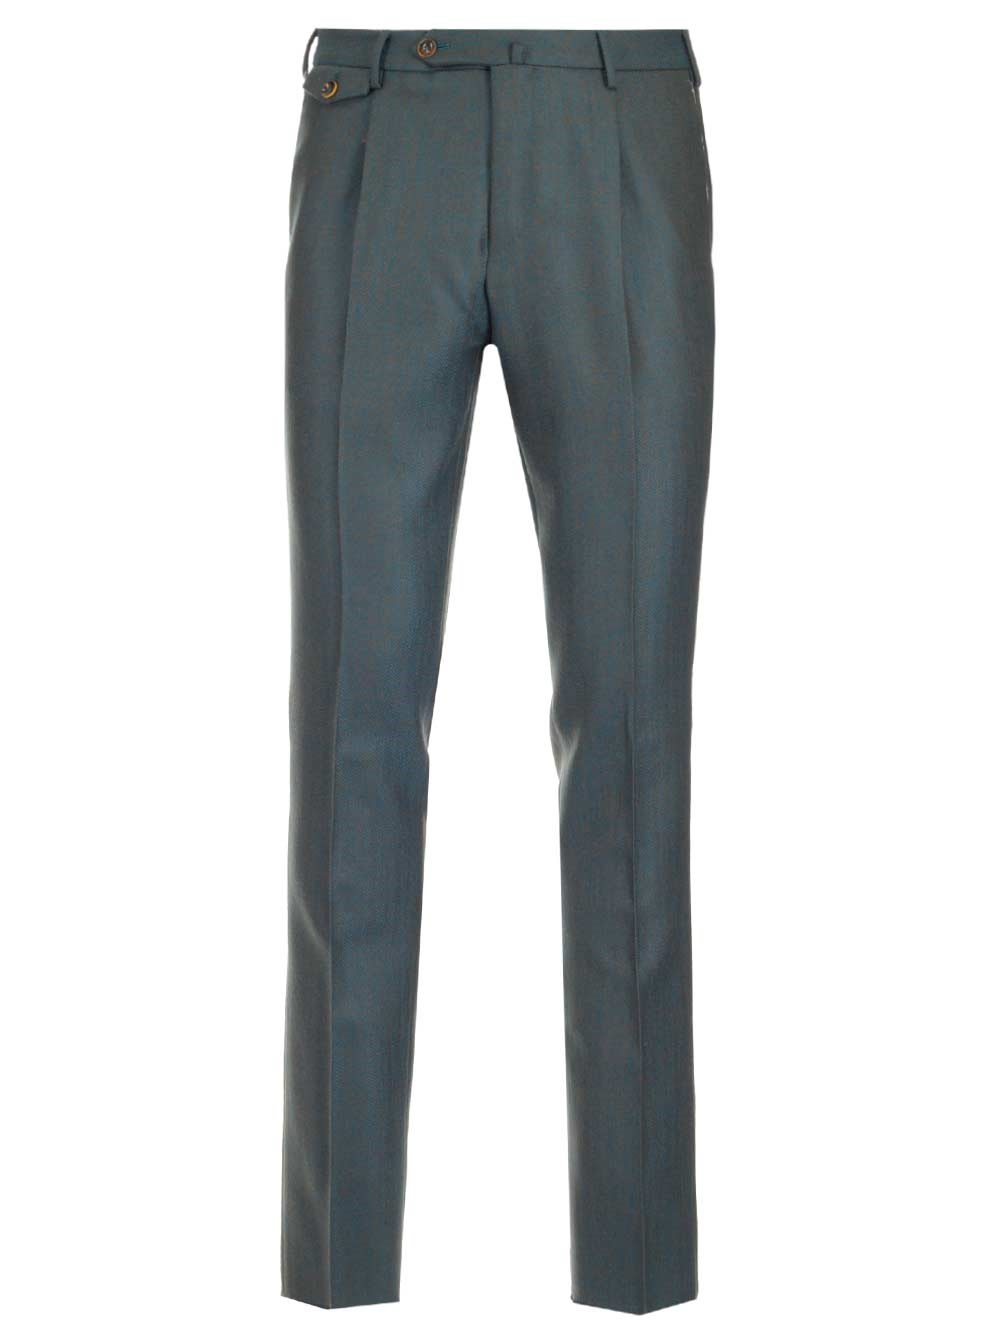 PT TORINO Green Wool Trousers With Pinces